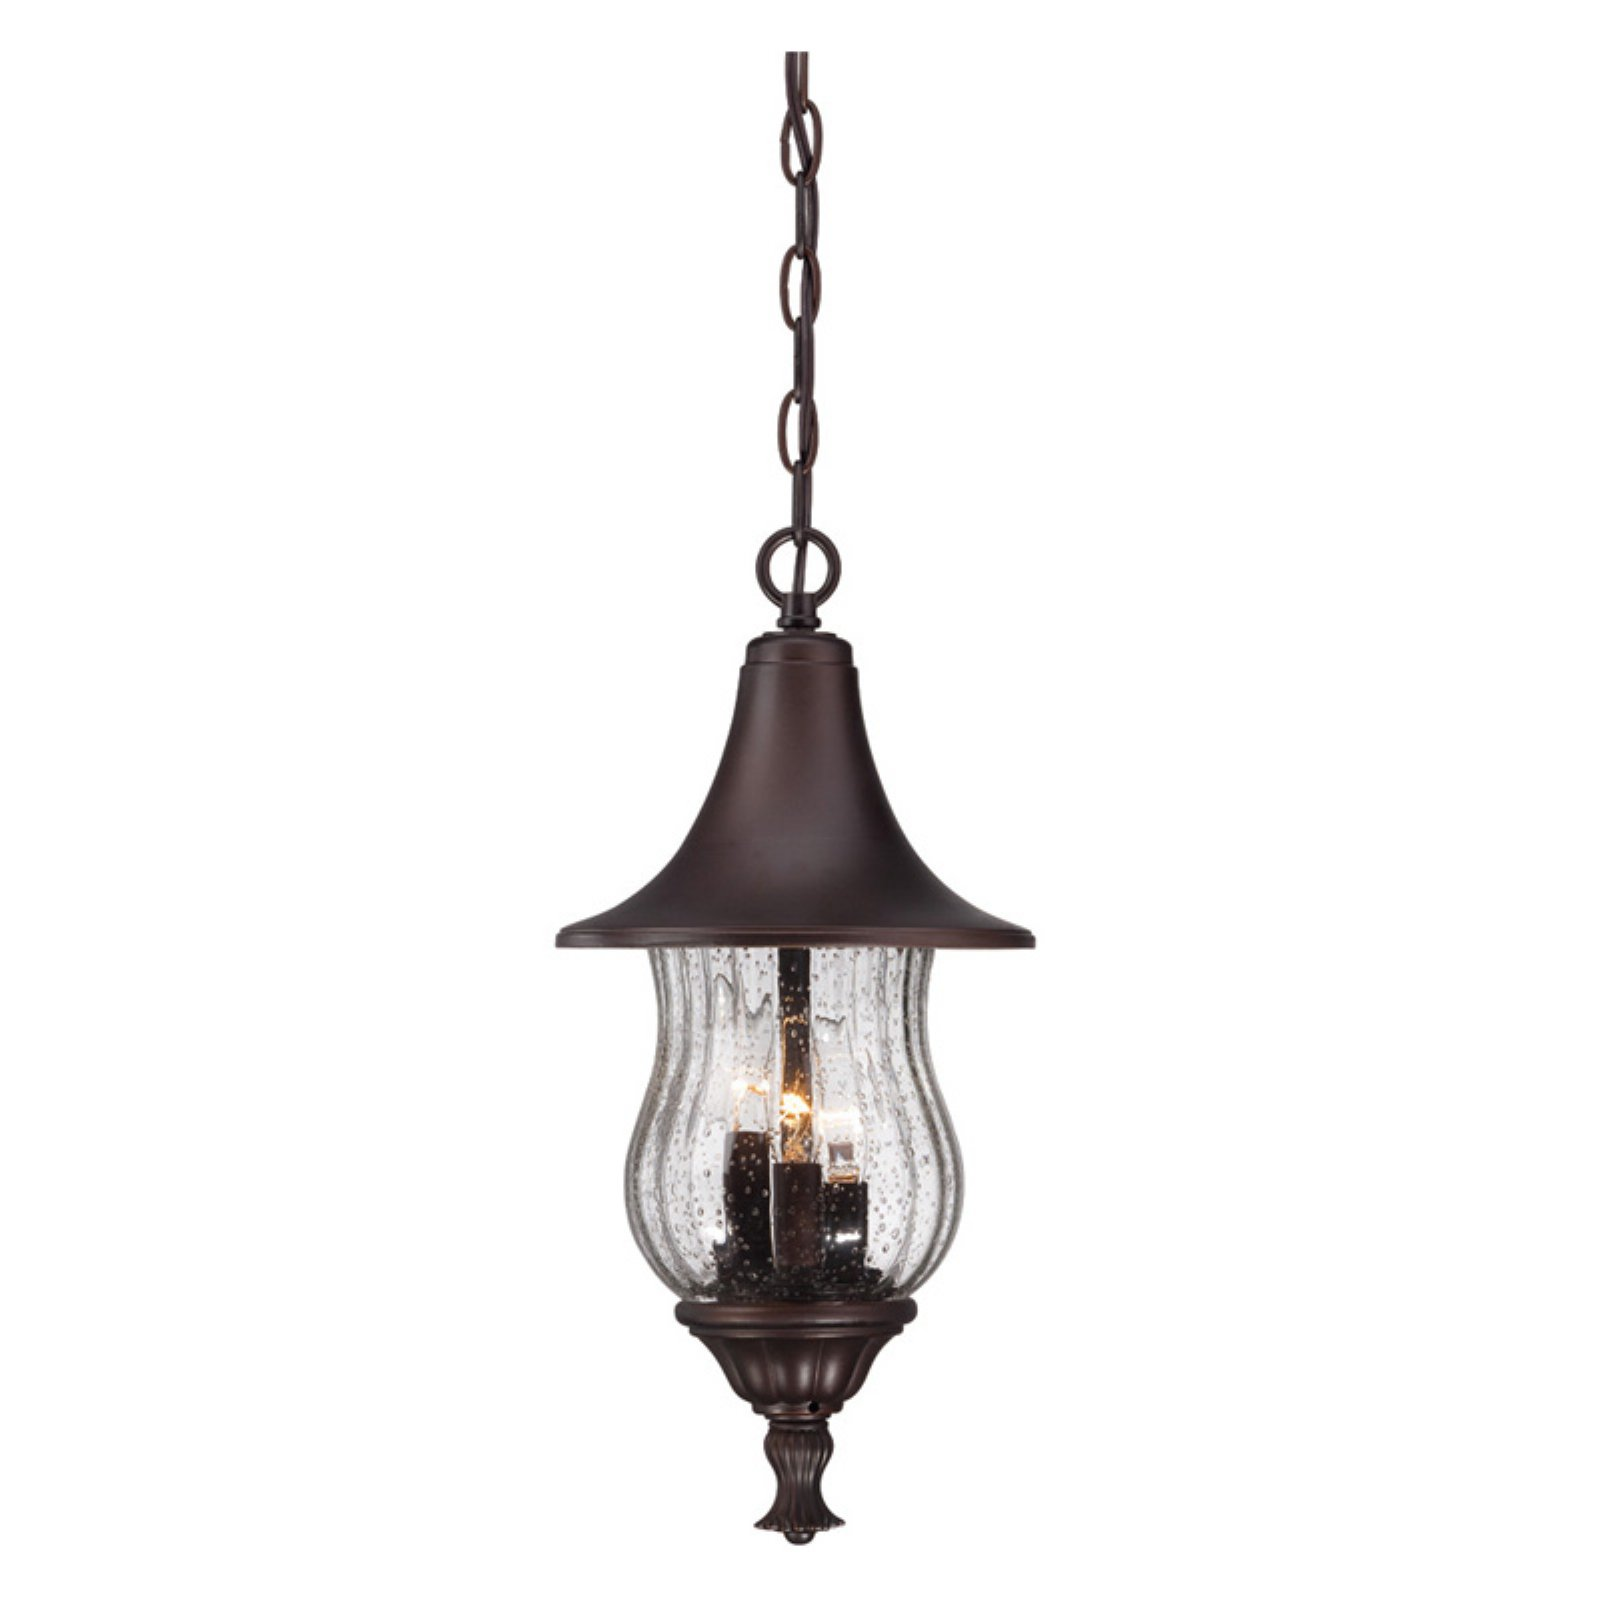 Acclaim Lighting Del Rio Outdoor Hanging Lantern Light Fixture by Acclaim Lighting